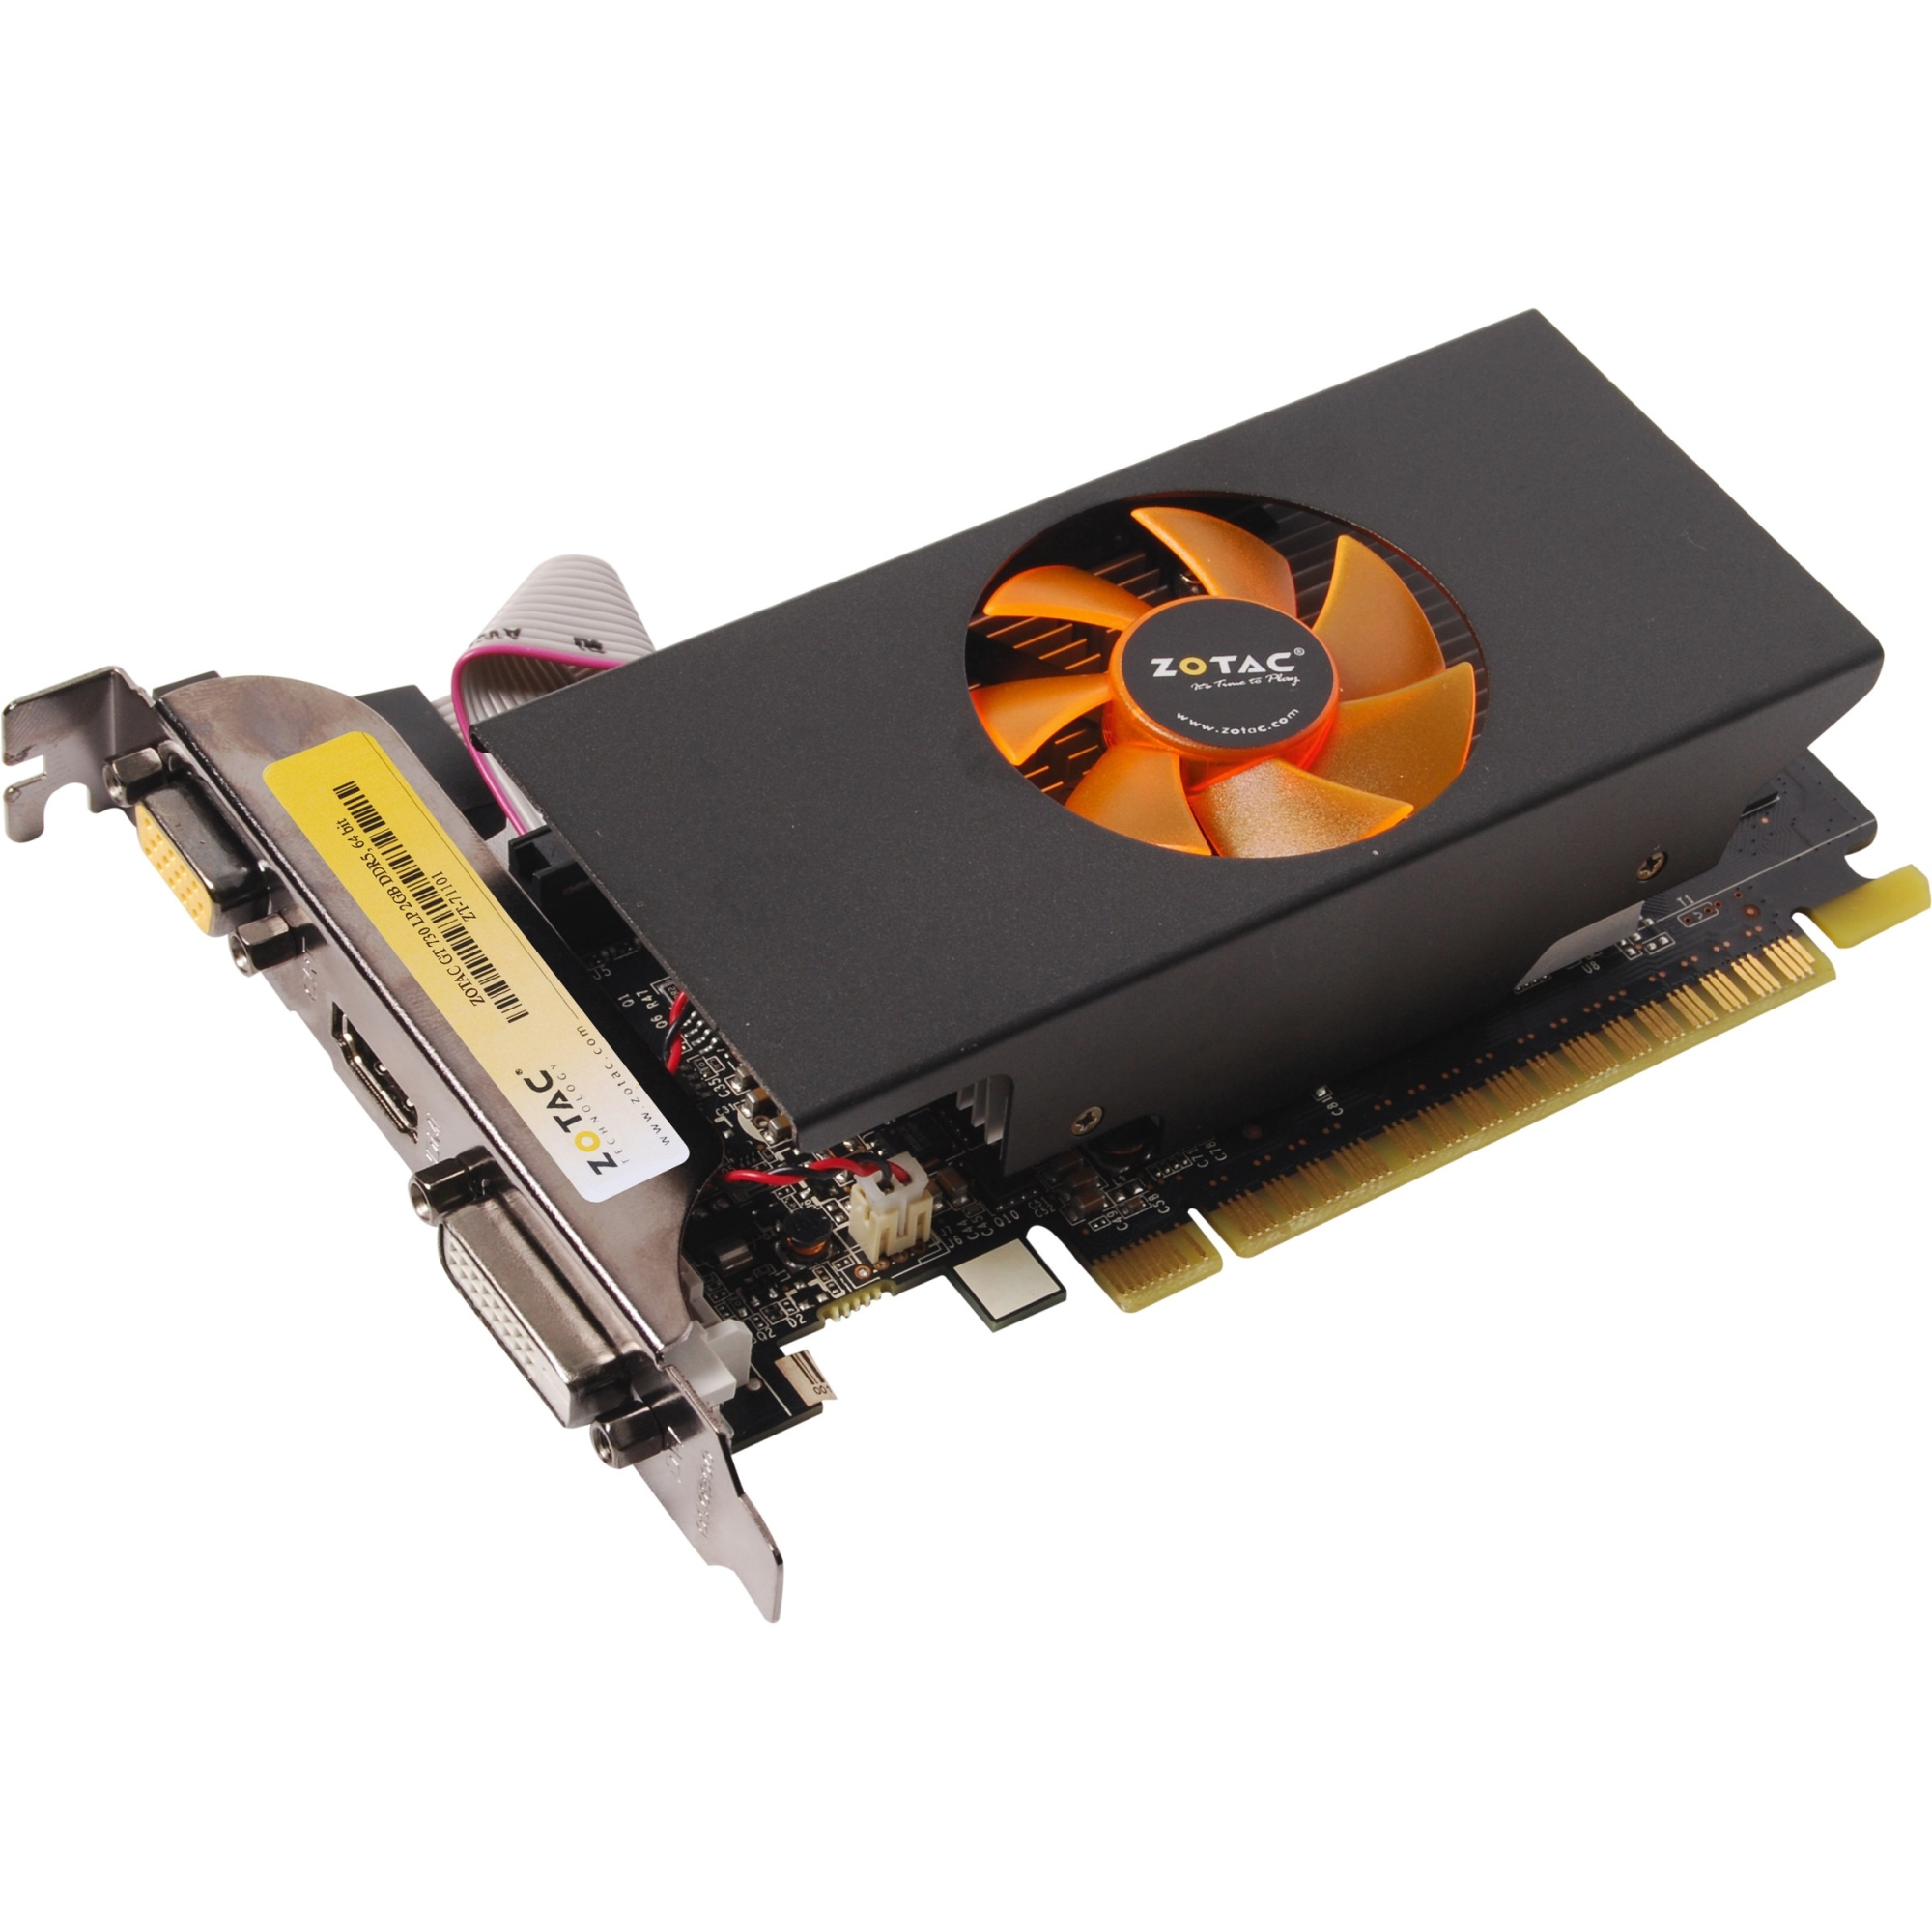 GeForce GT 730 Graphic Card - 902 MHz Core - 2 GB GDDR5 SDRAM - PCI Express 2.0 x16 - 5010 MHz Memory Clock - 2560 x 1600 - Fan Cooler - DirectX 12 OpenGL 4.4 - HDMI - DVI - VGA